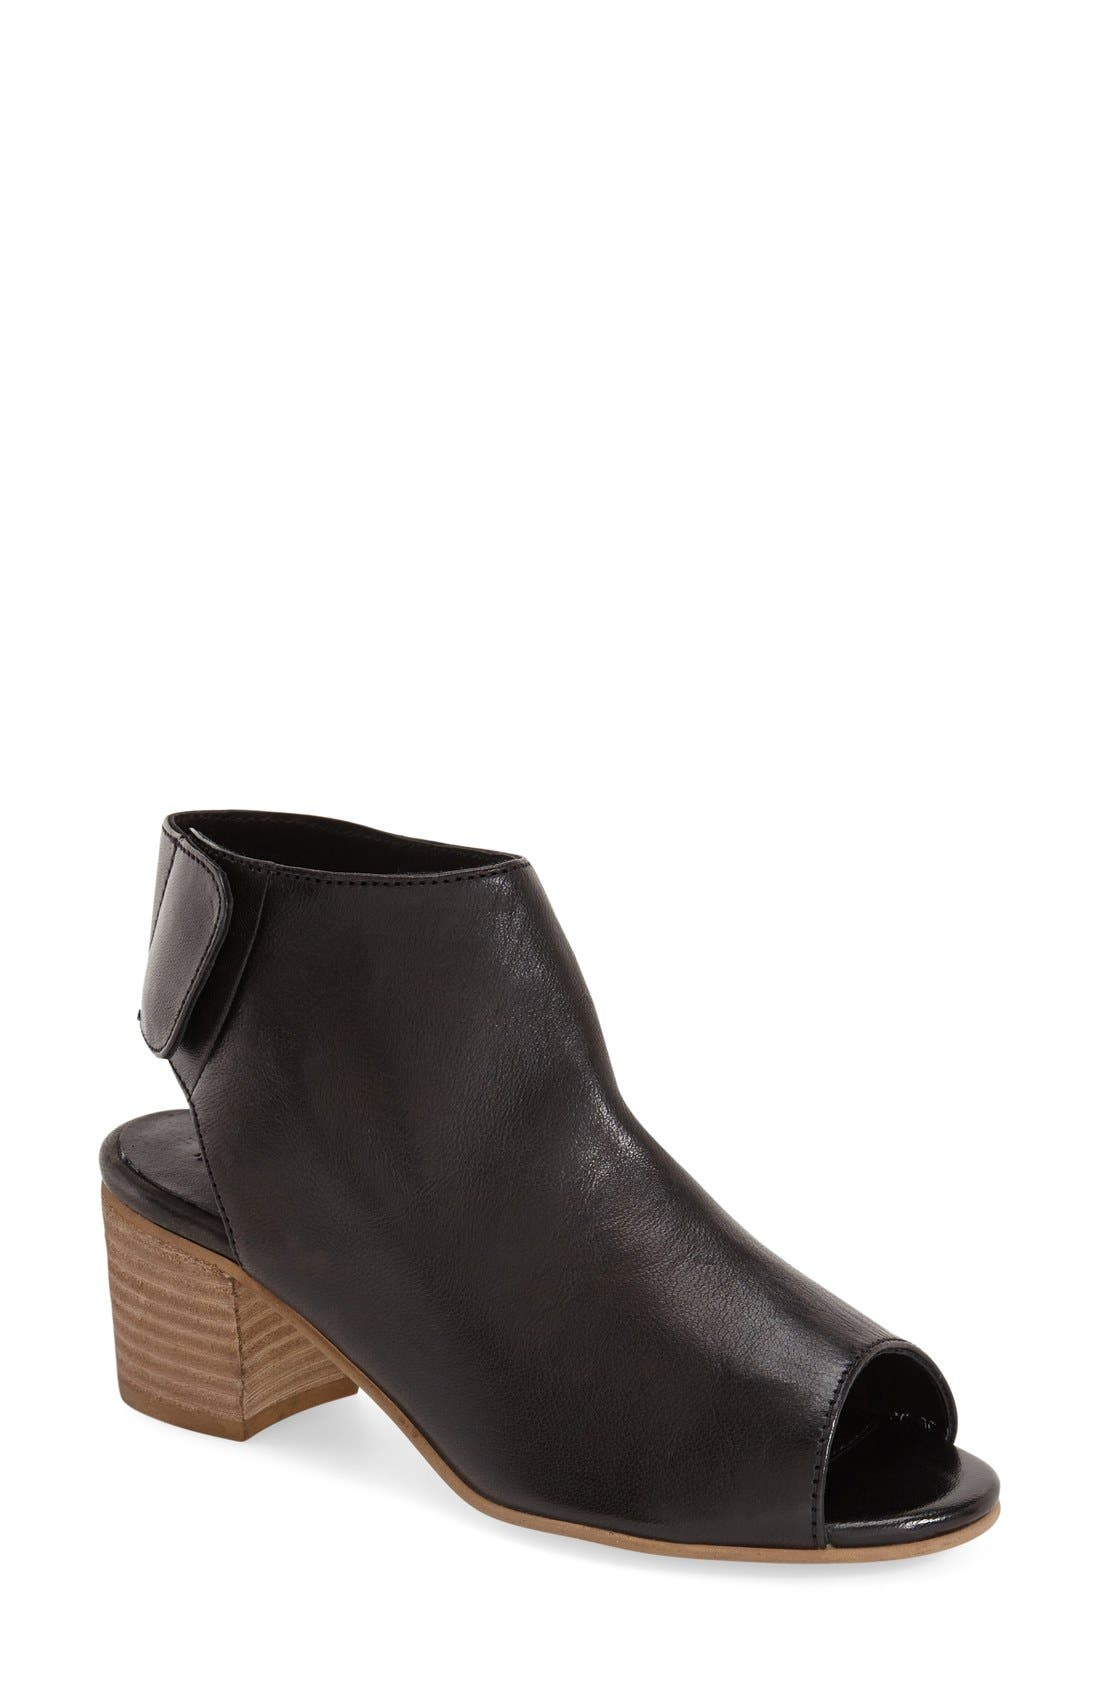 Alternate Image 1 Selected - Dune London 'Joanna' Bootie (Women)